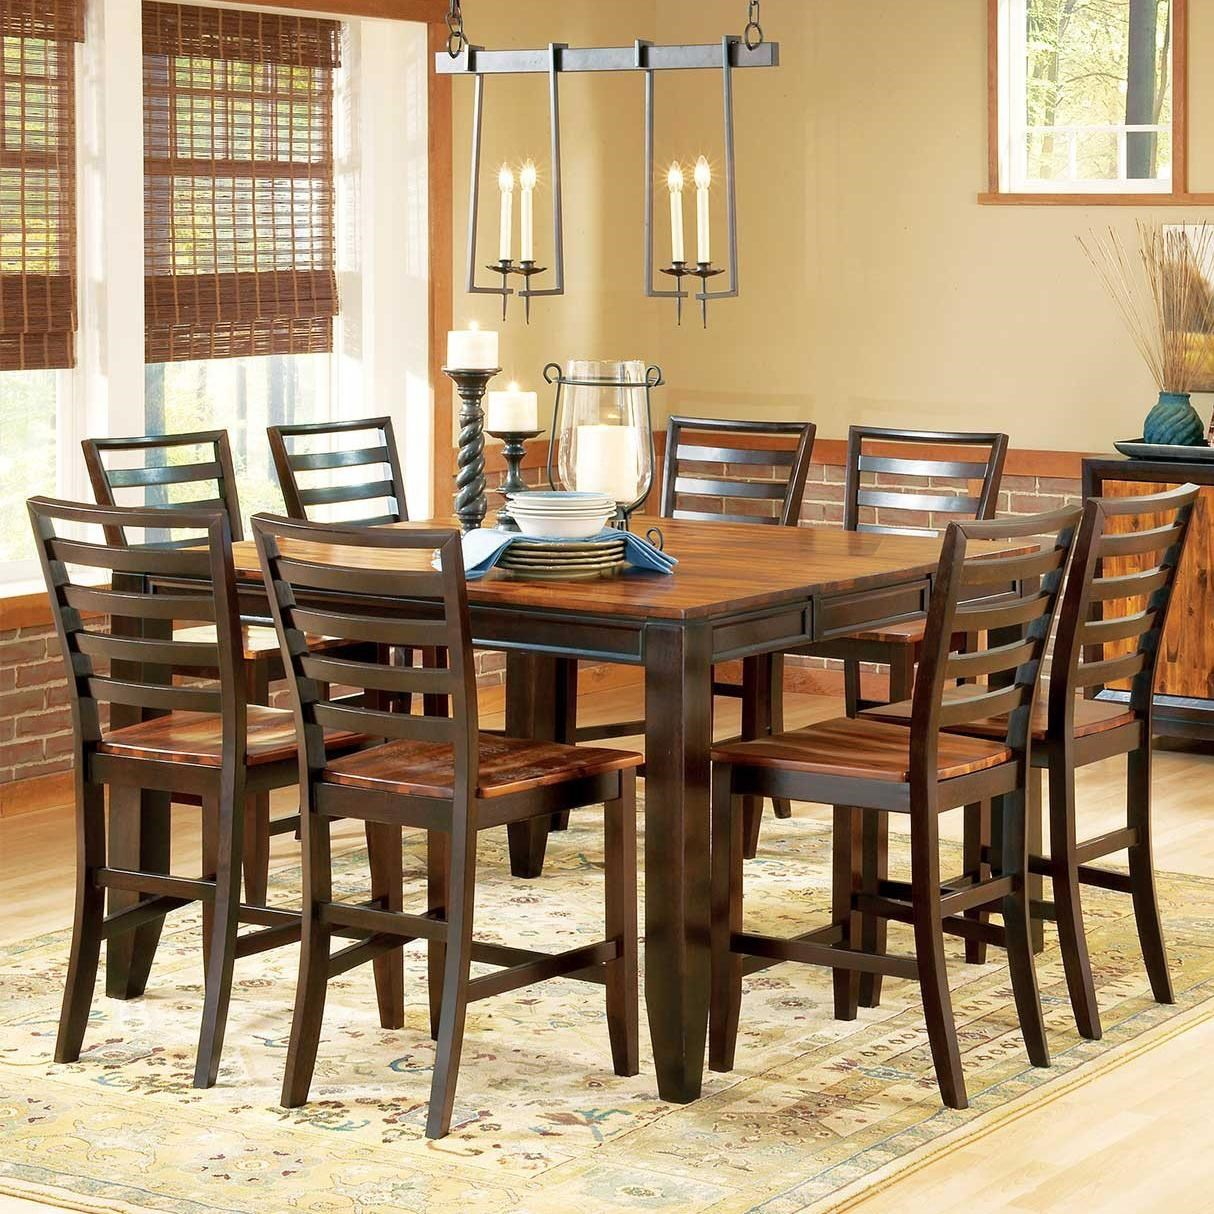 Superieur Star Abaco 9 Piece Gathering Table Set, 54